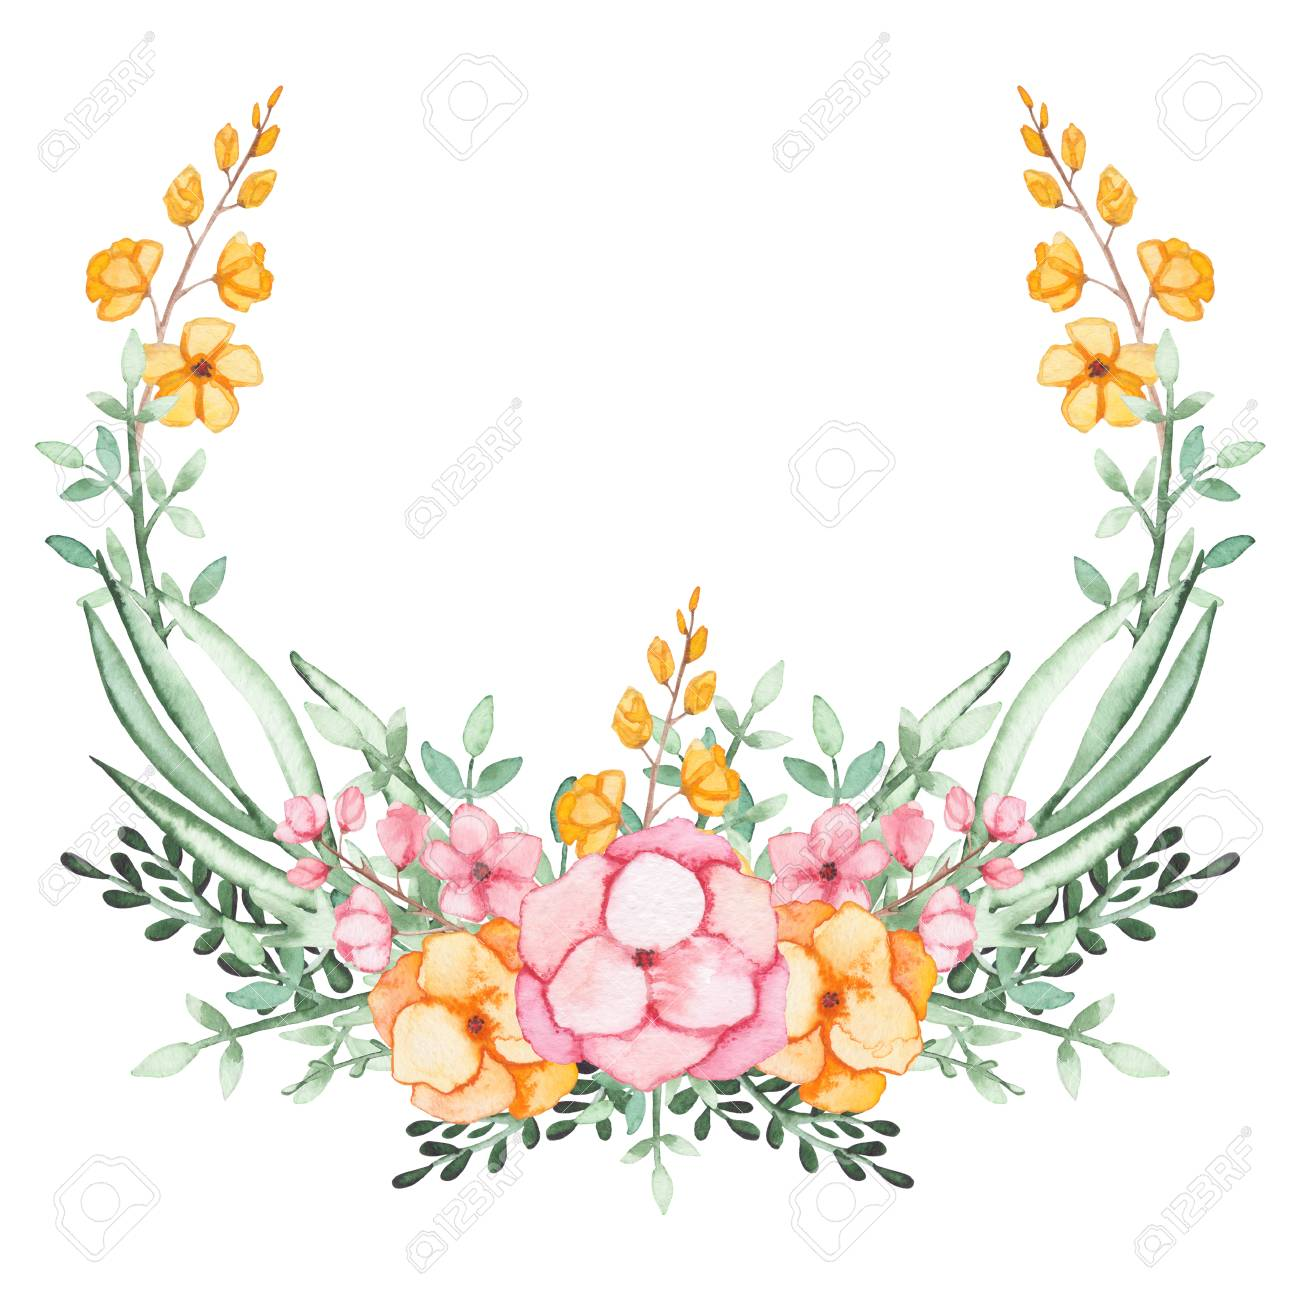 Floral Wreath With Watercolor Pink And Yellow Flowers And Green